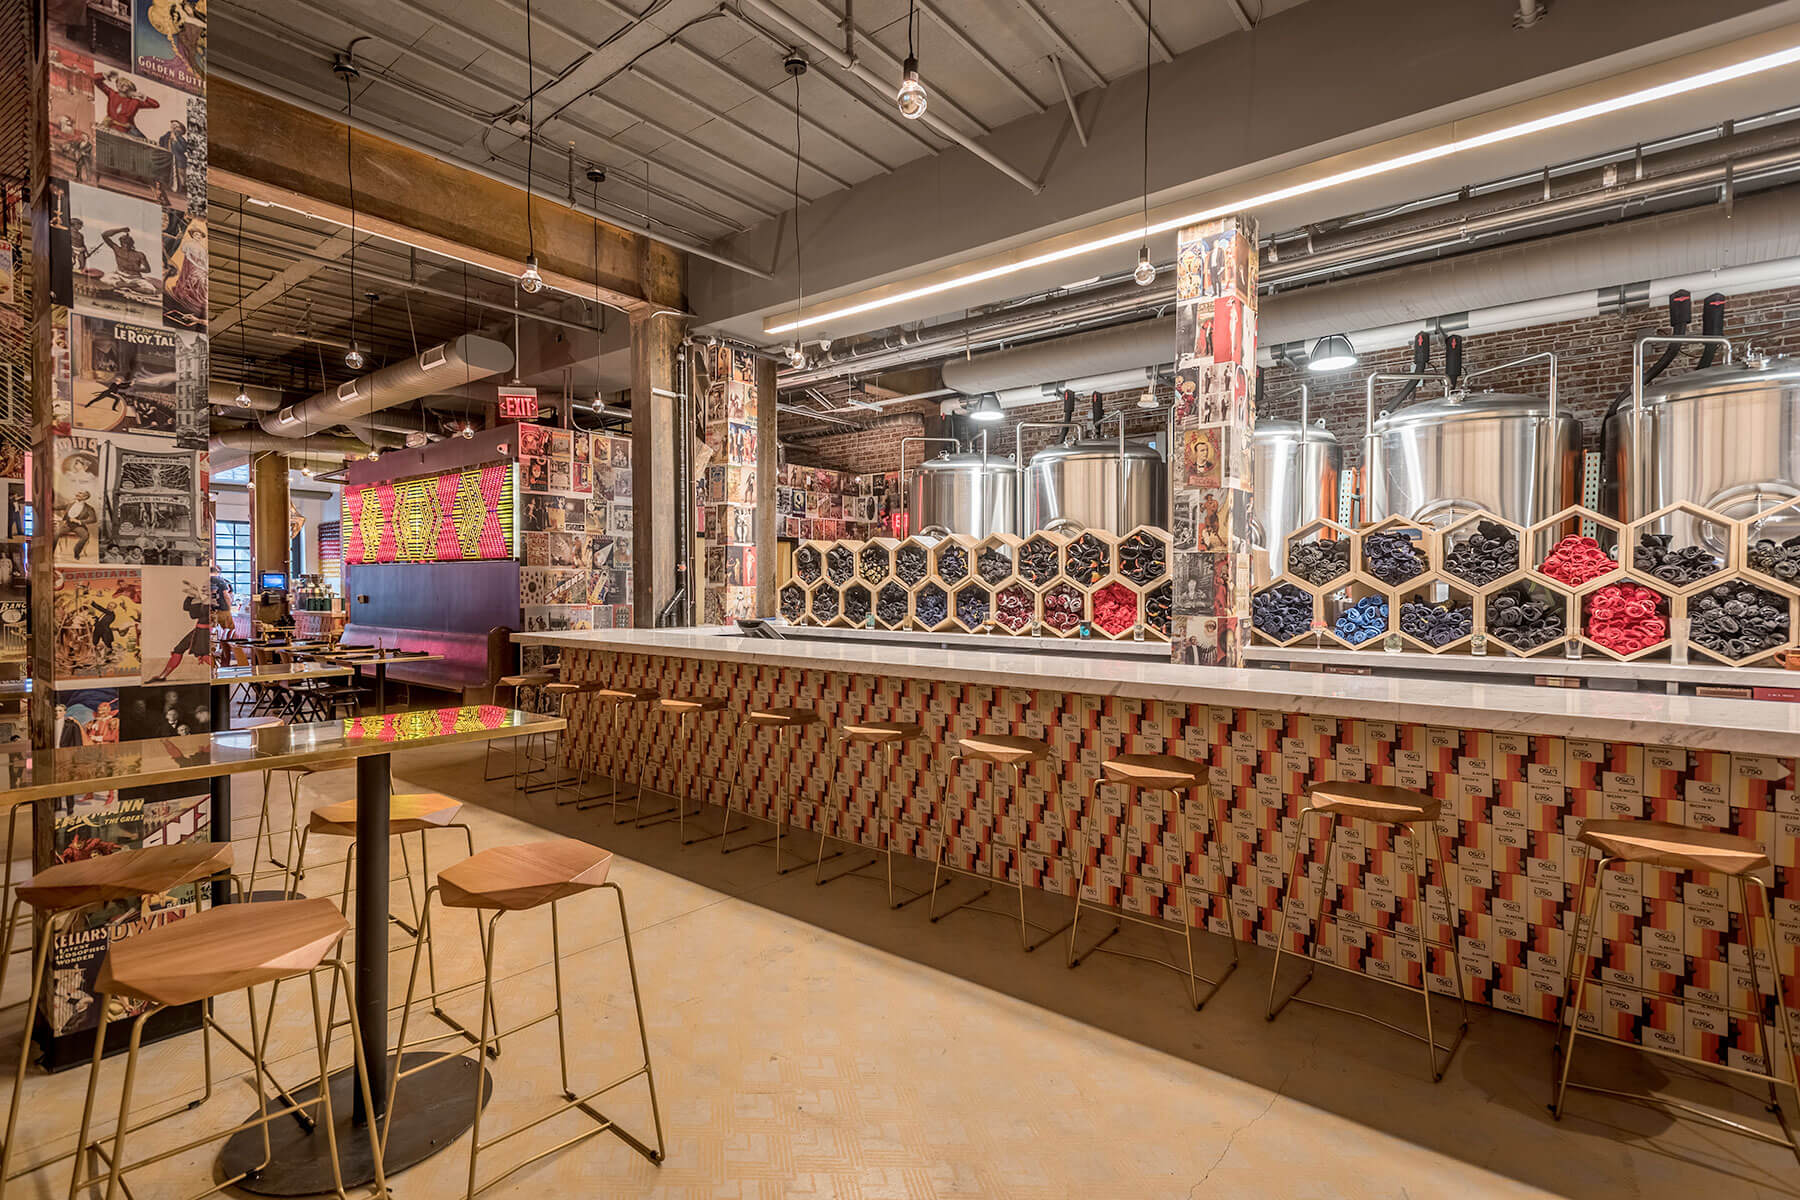 Inside The Dankness Dojo taproom at the Modern Times Beer location in Los Angeles, California